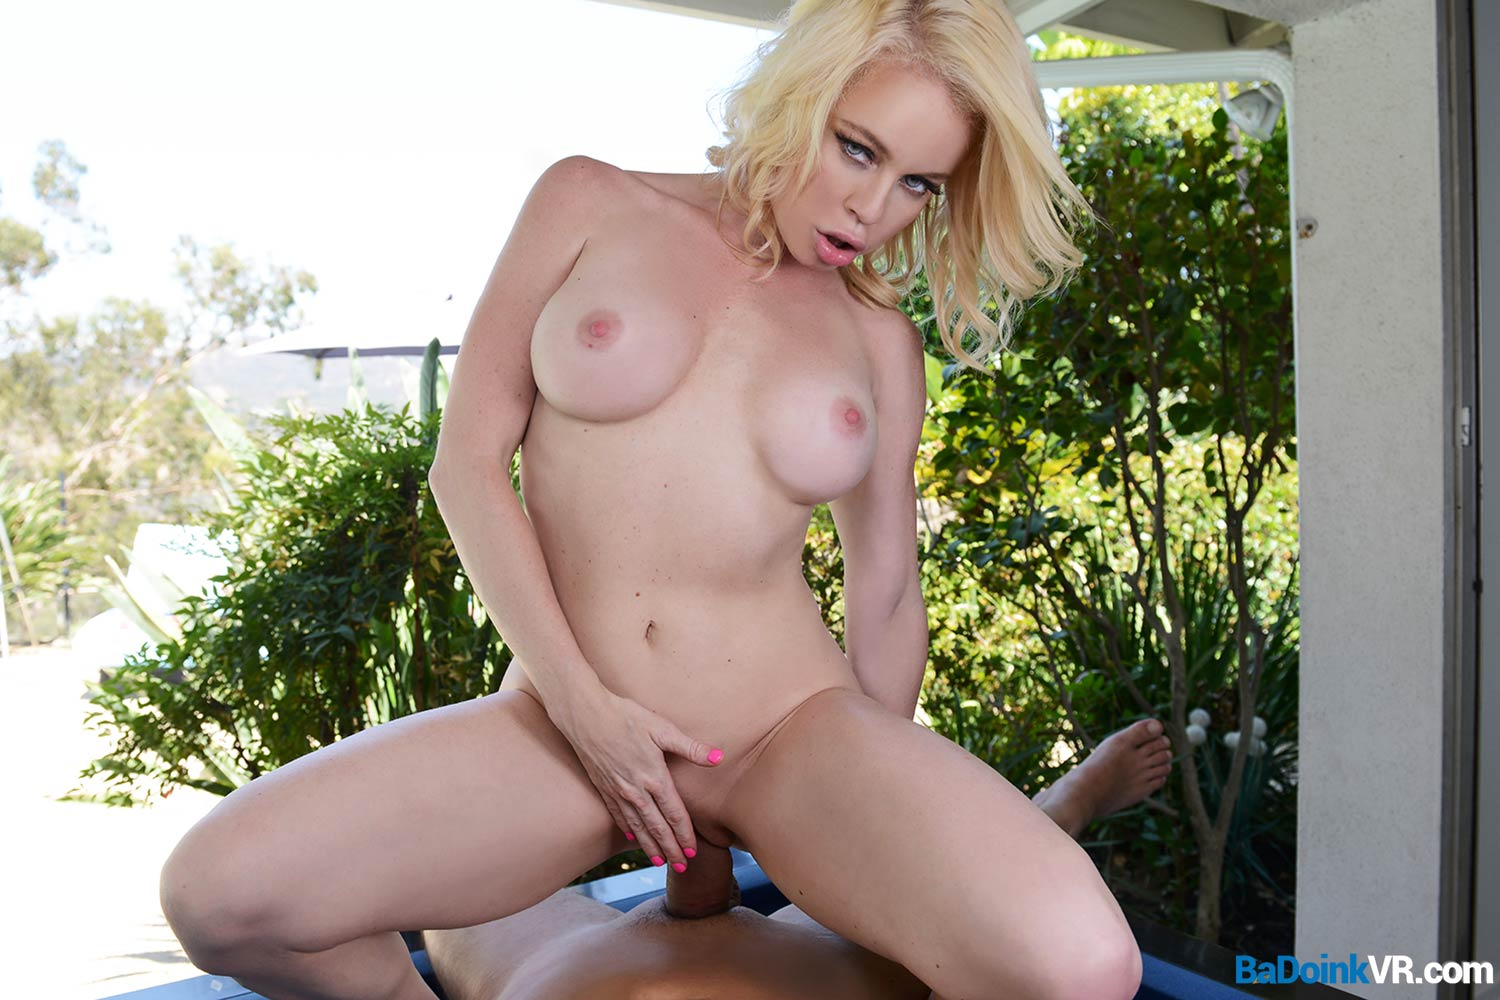 Big Boobs In VR presented by the Gourgeous Blond Nikki Delano | MobileVRxxx